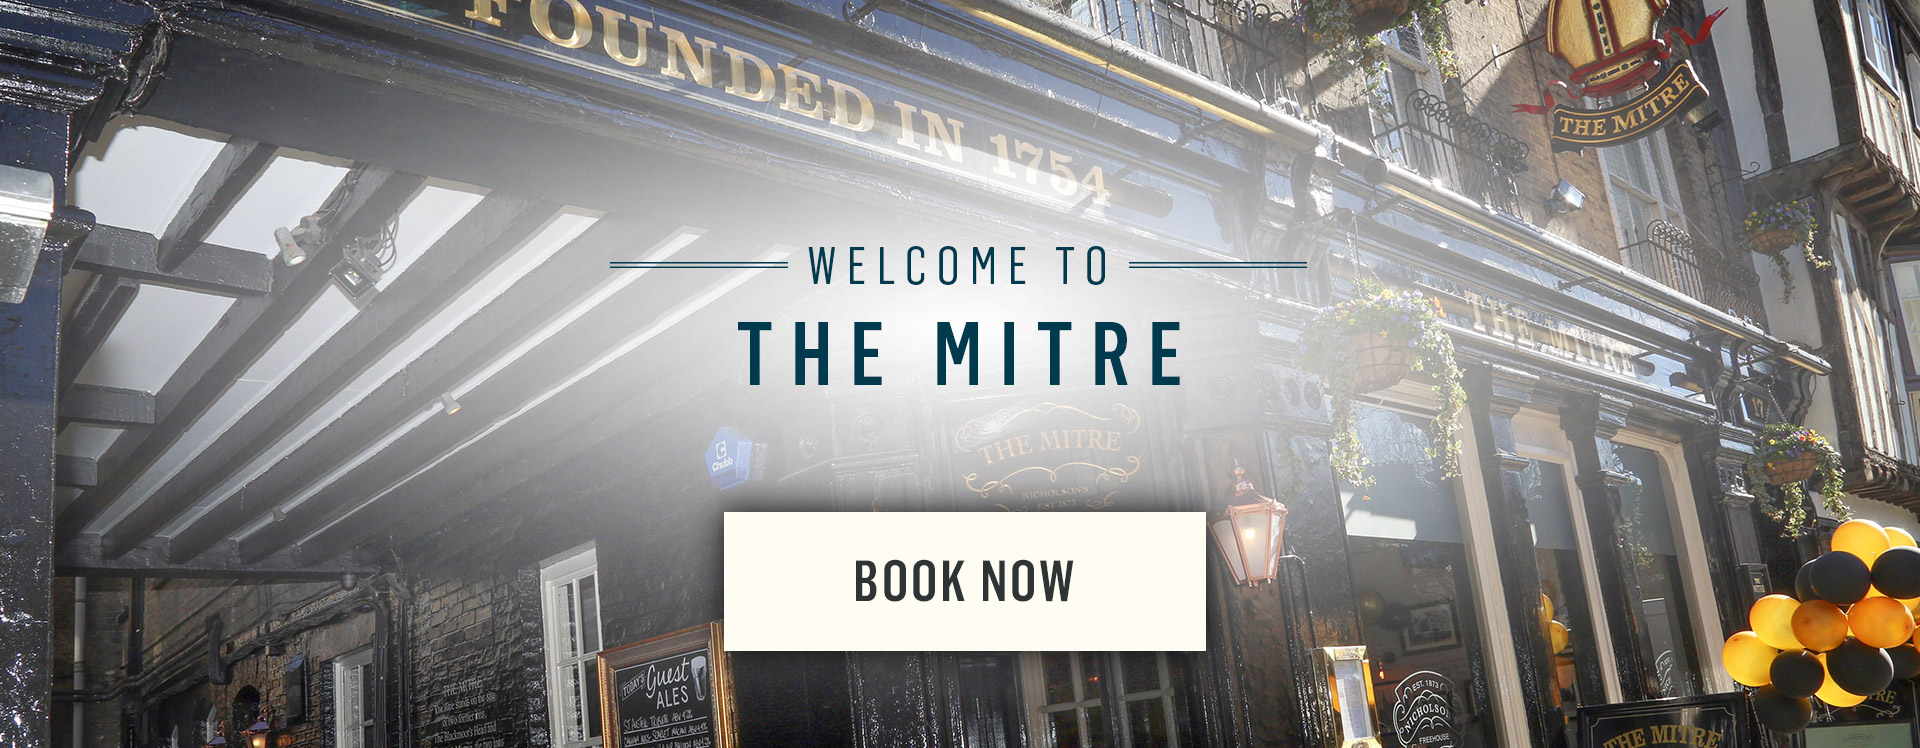 Welcome to The Mitre - Book Now